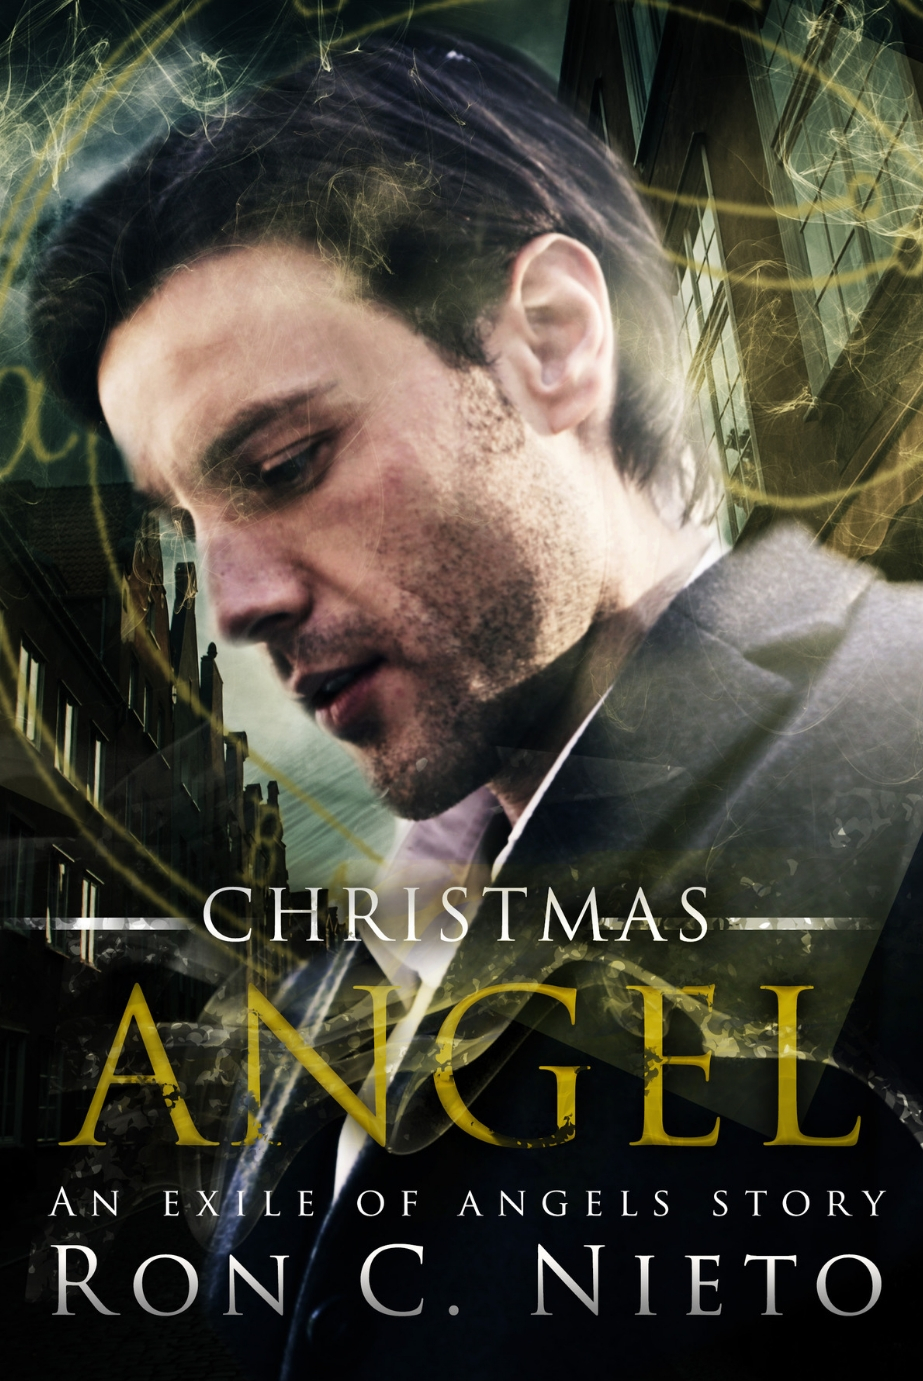 //www.roncnieto.com/wp-content/uploads/2018/11/Christmas-Angel-Website-Cover-1.jpg